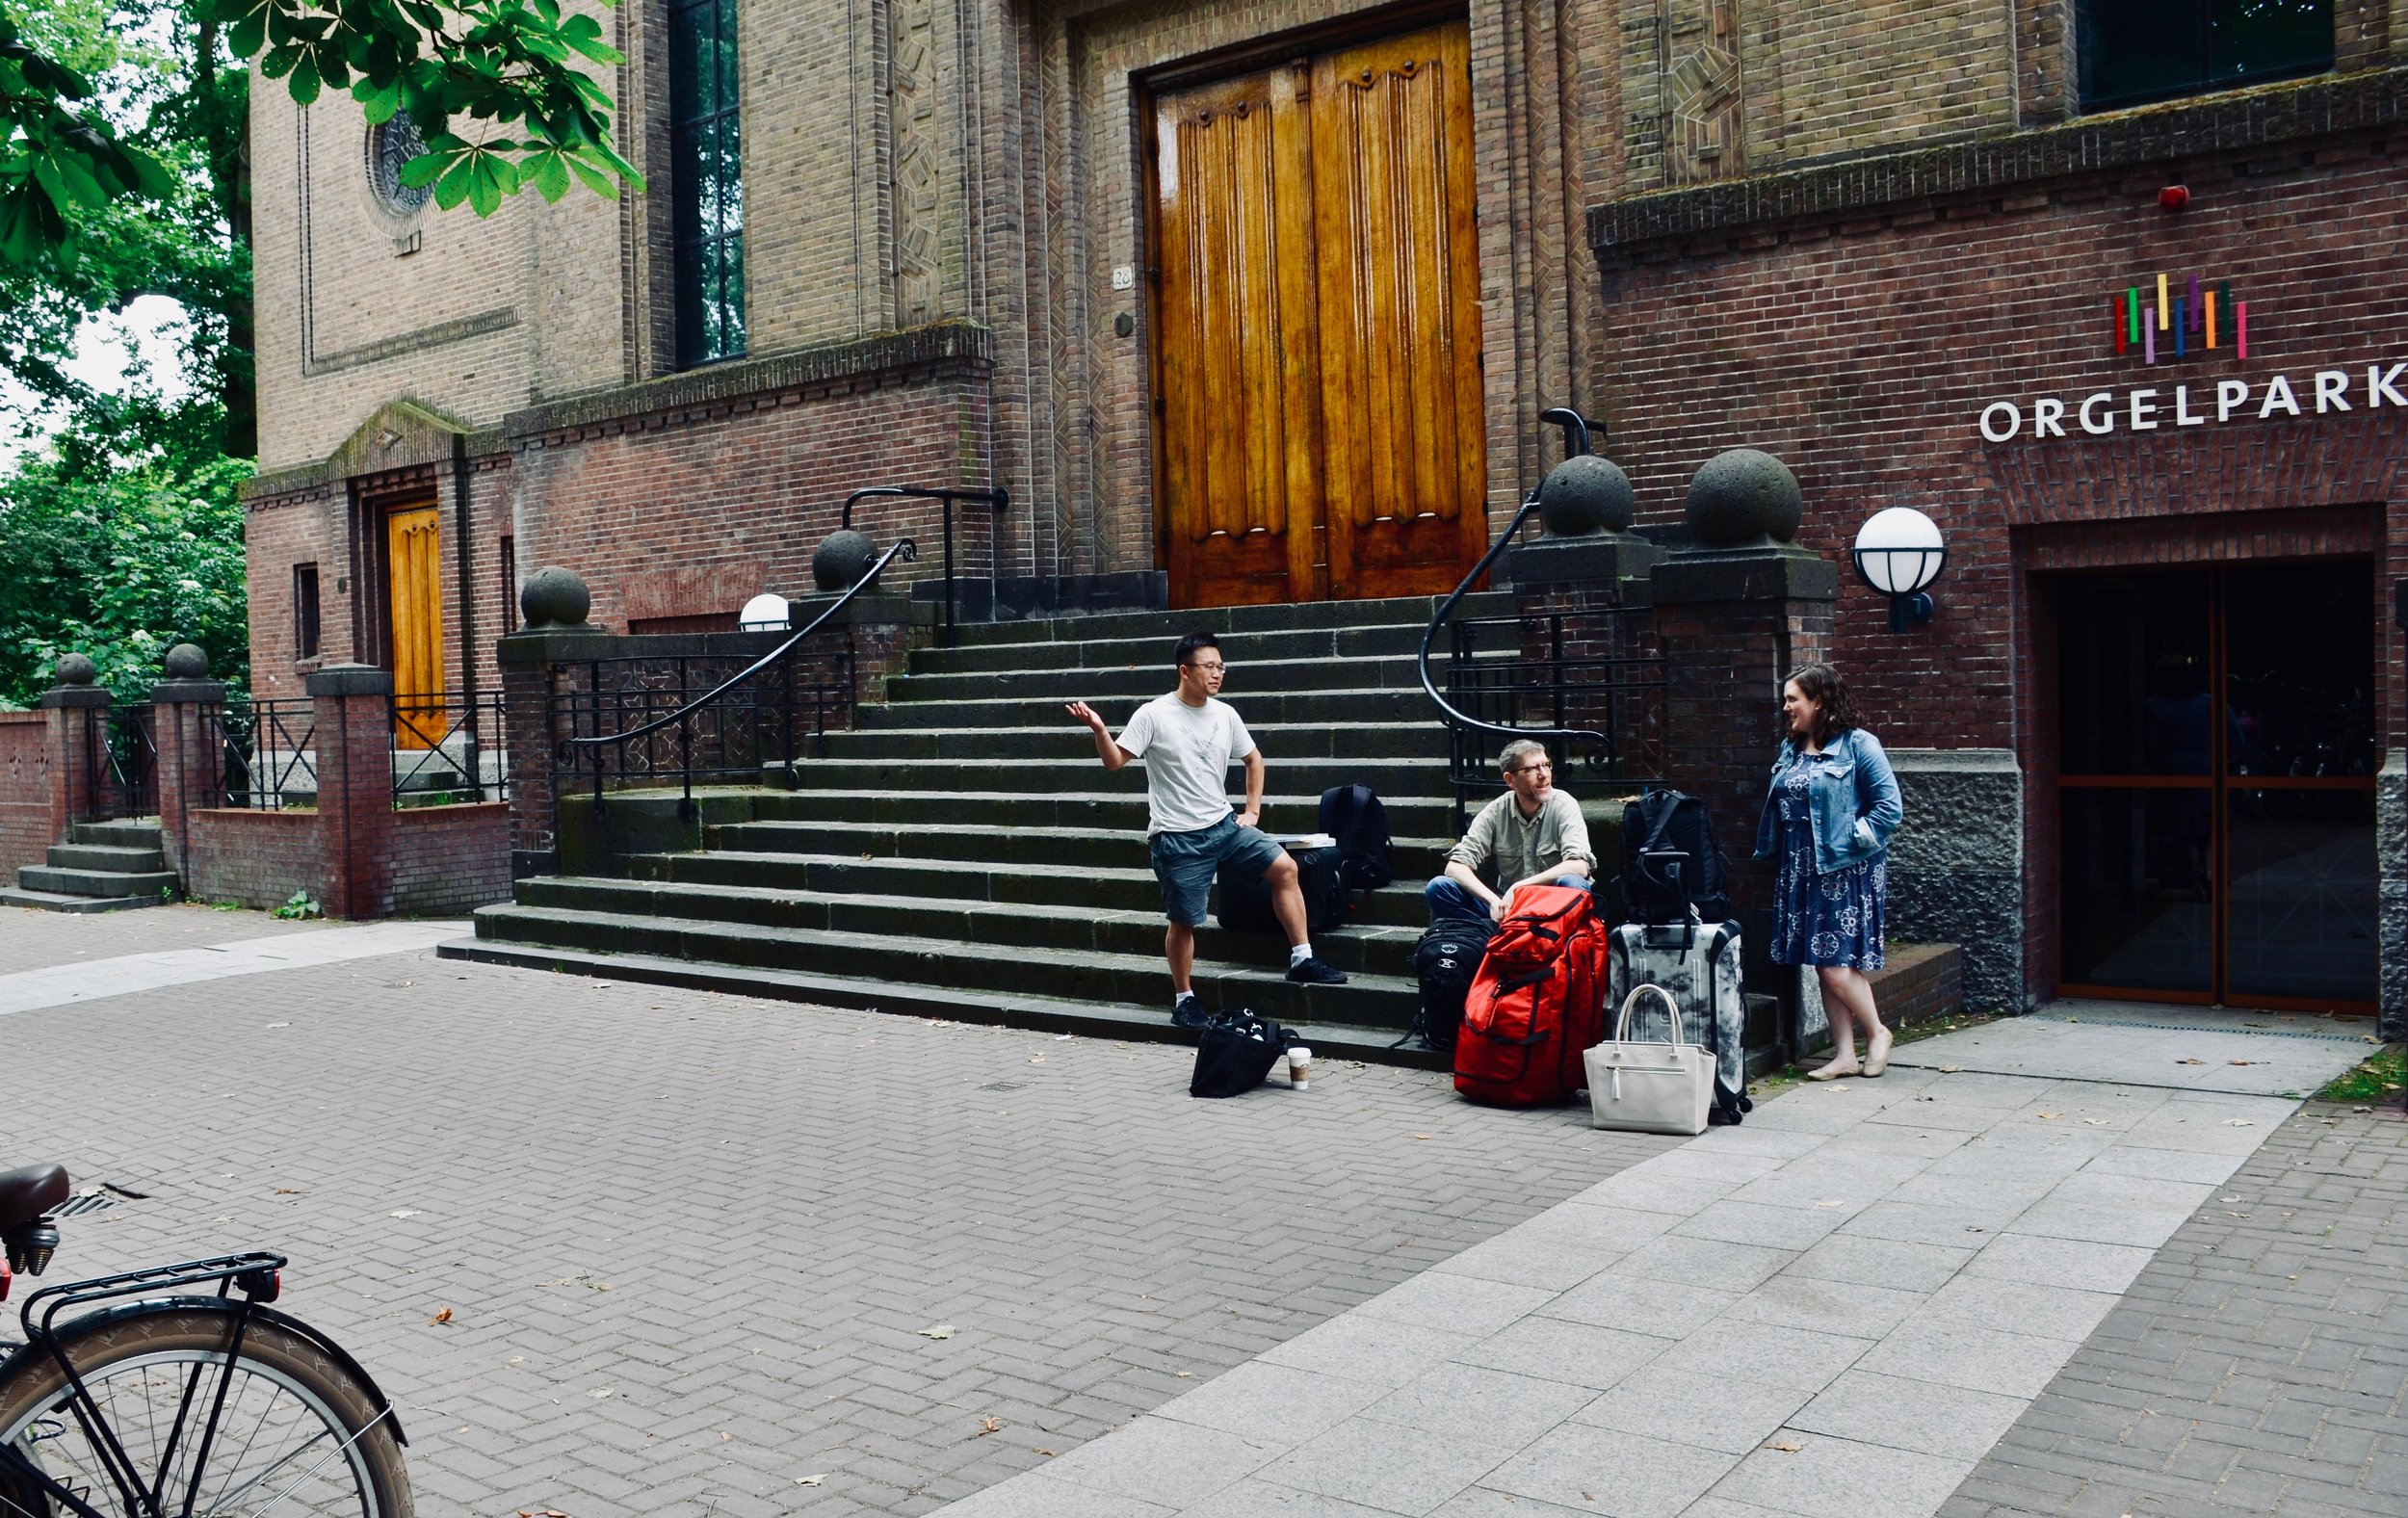 Adrian Cho, Chris Porter, and Chelsea Keating outside of Orgelpark, Amsterdam.